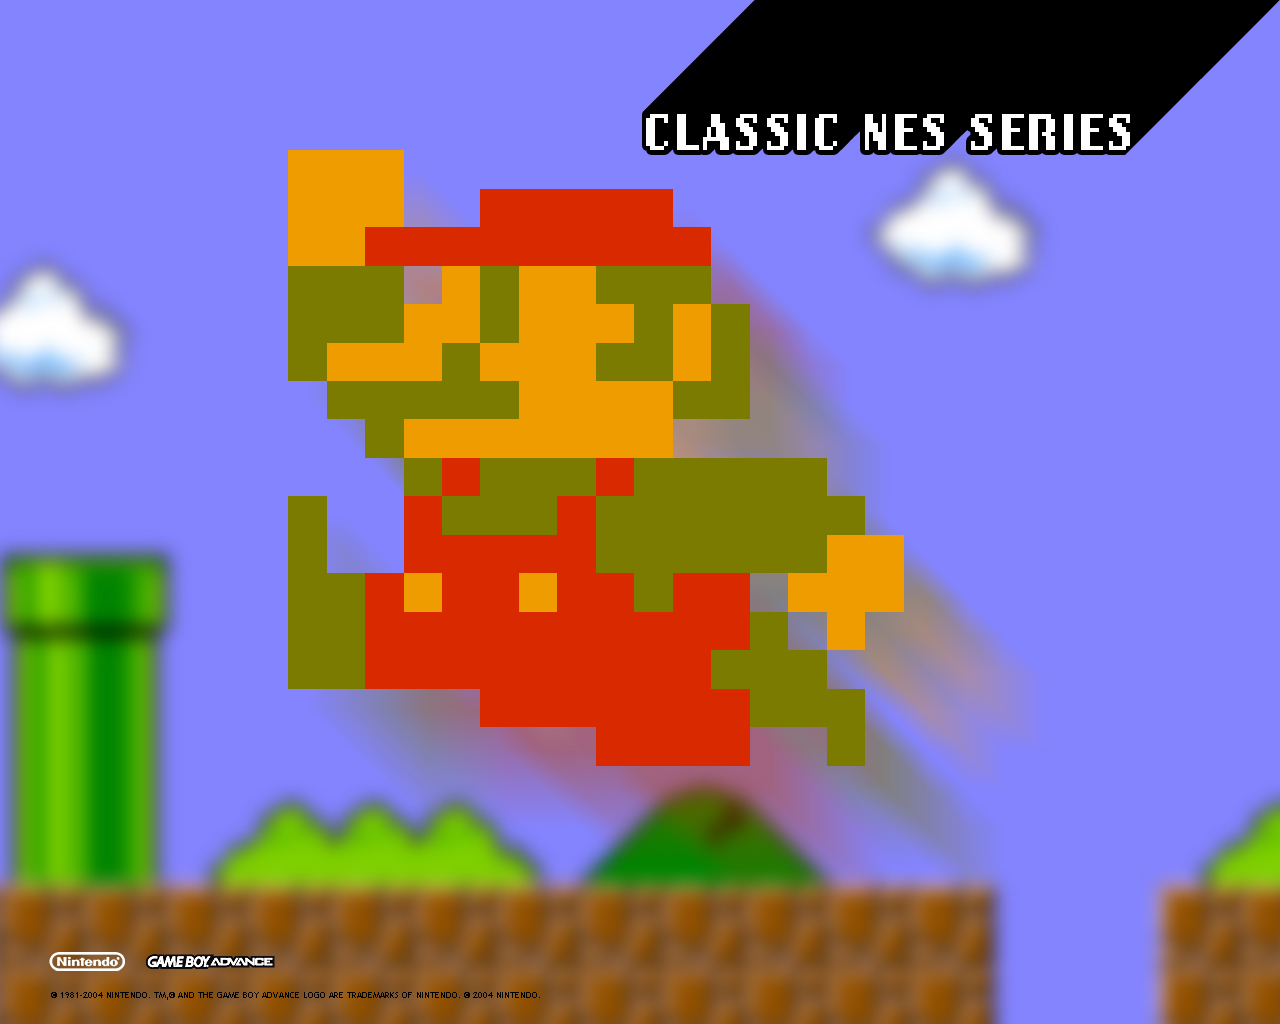 Free Download Images Wallpaper Classic Nes Series Super Mario Bros Gba 1280x1024 For Your Desktop Mobile Tablet Explore 50 Super Mario Bros Nes Wallpaper